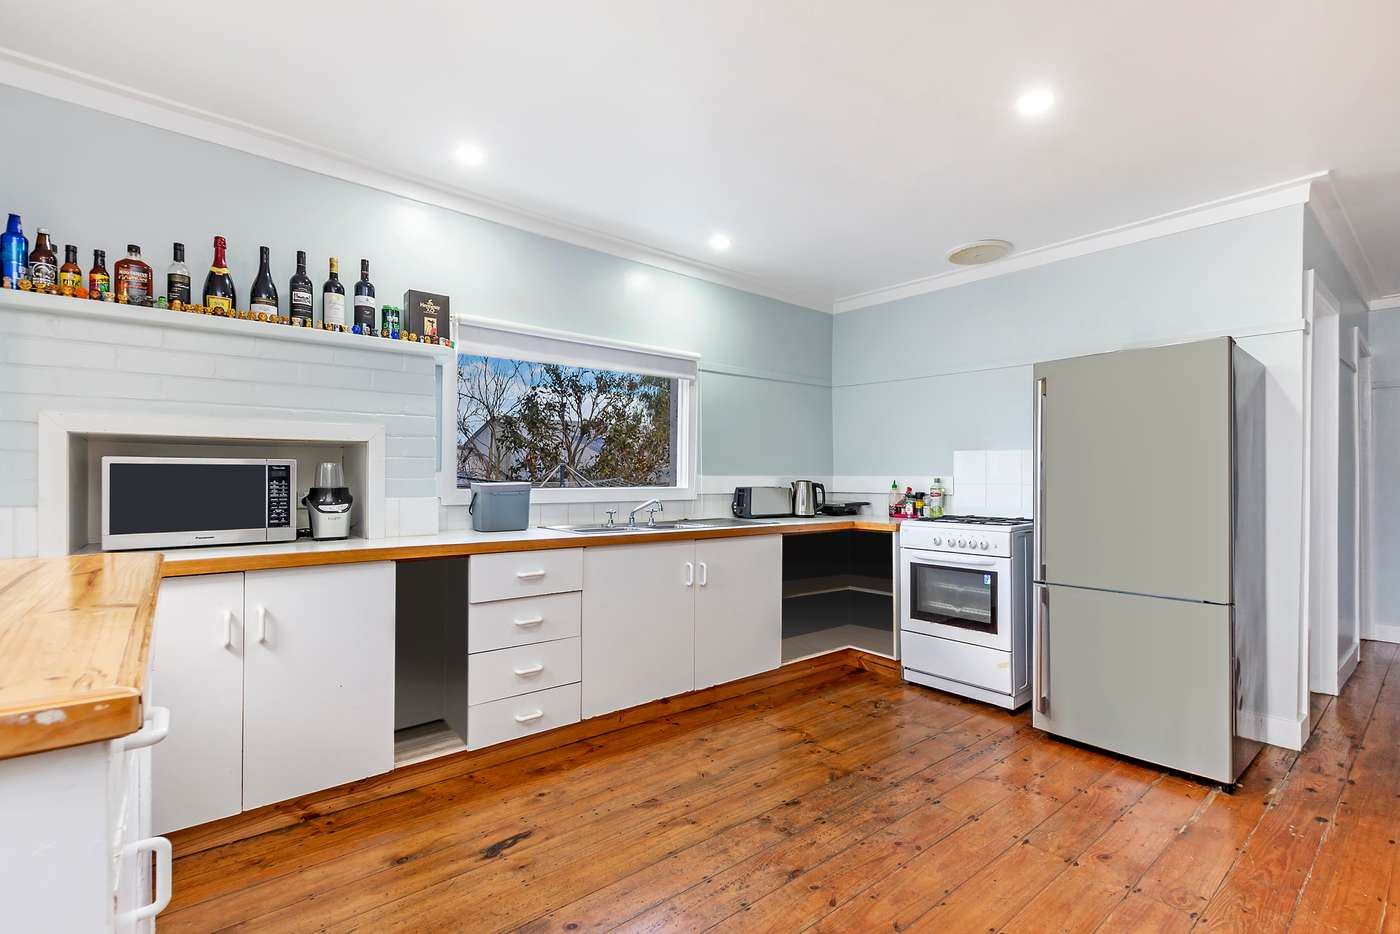 Seventh view of Homely house listing, 47A Gawler Street, Portland VIC 3305